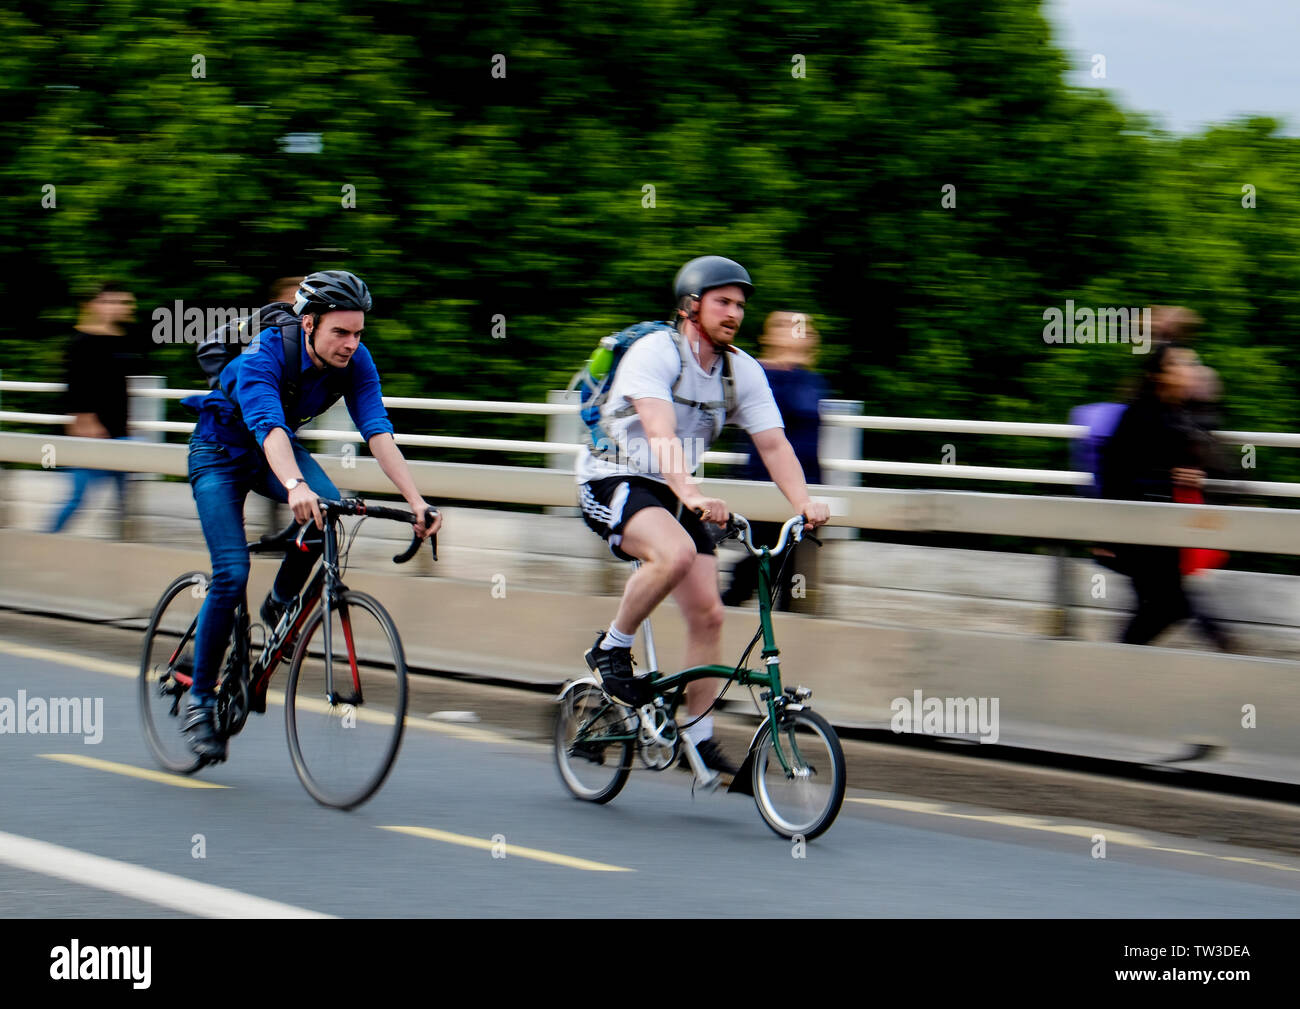 Motion blur capture of a male cyclist on a racing bike overtaking another on a folding bike on Waterloo Bridge, London - Stock Image